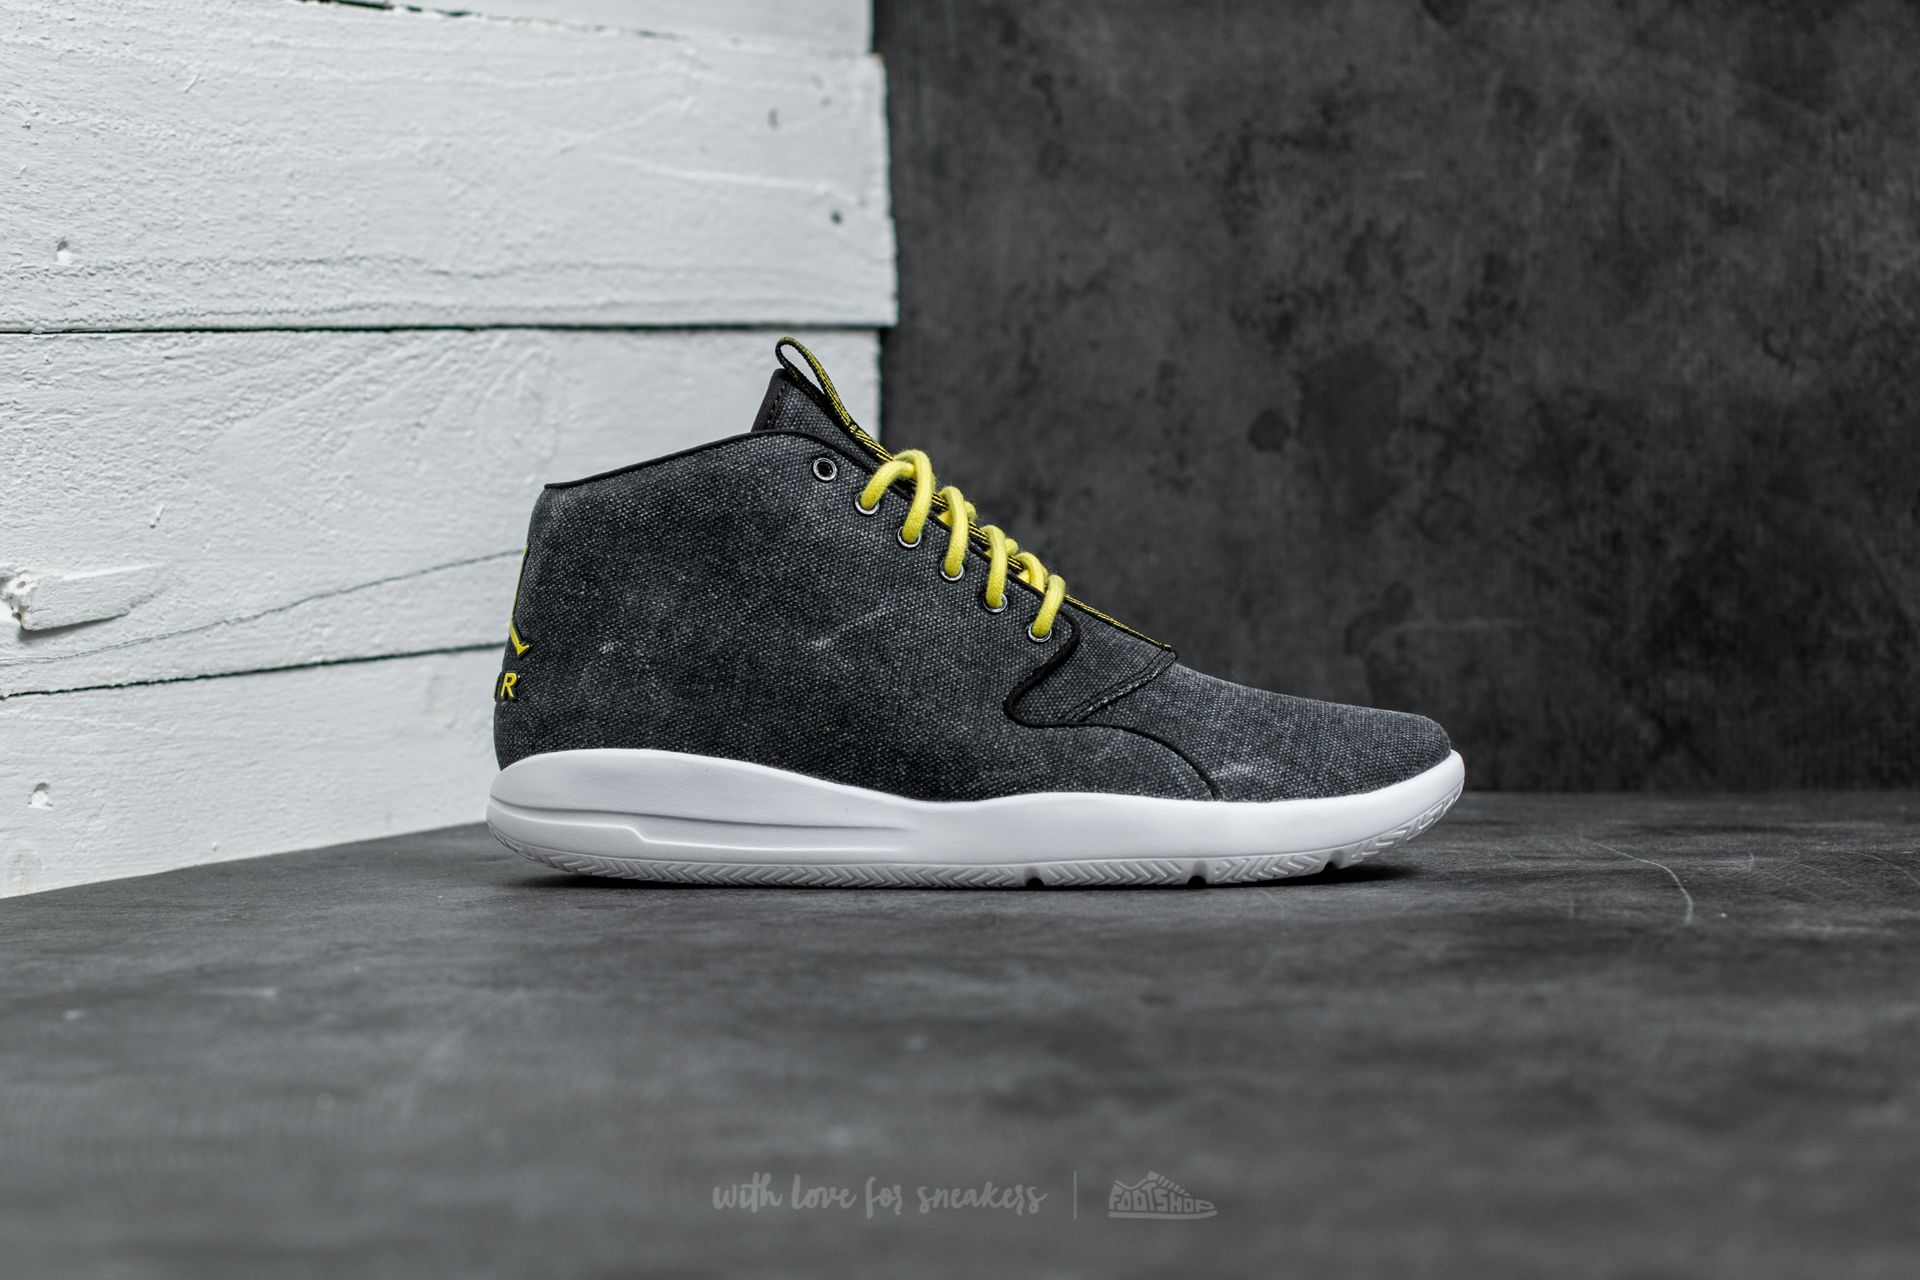 Jordan Eclipse Chukka Black Opti Yellow White | Footshop